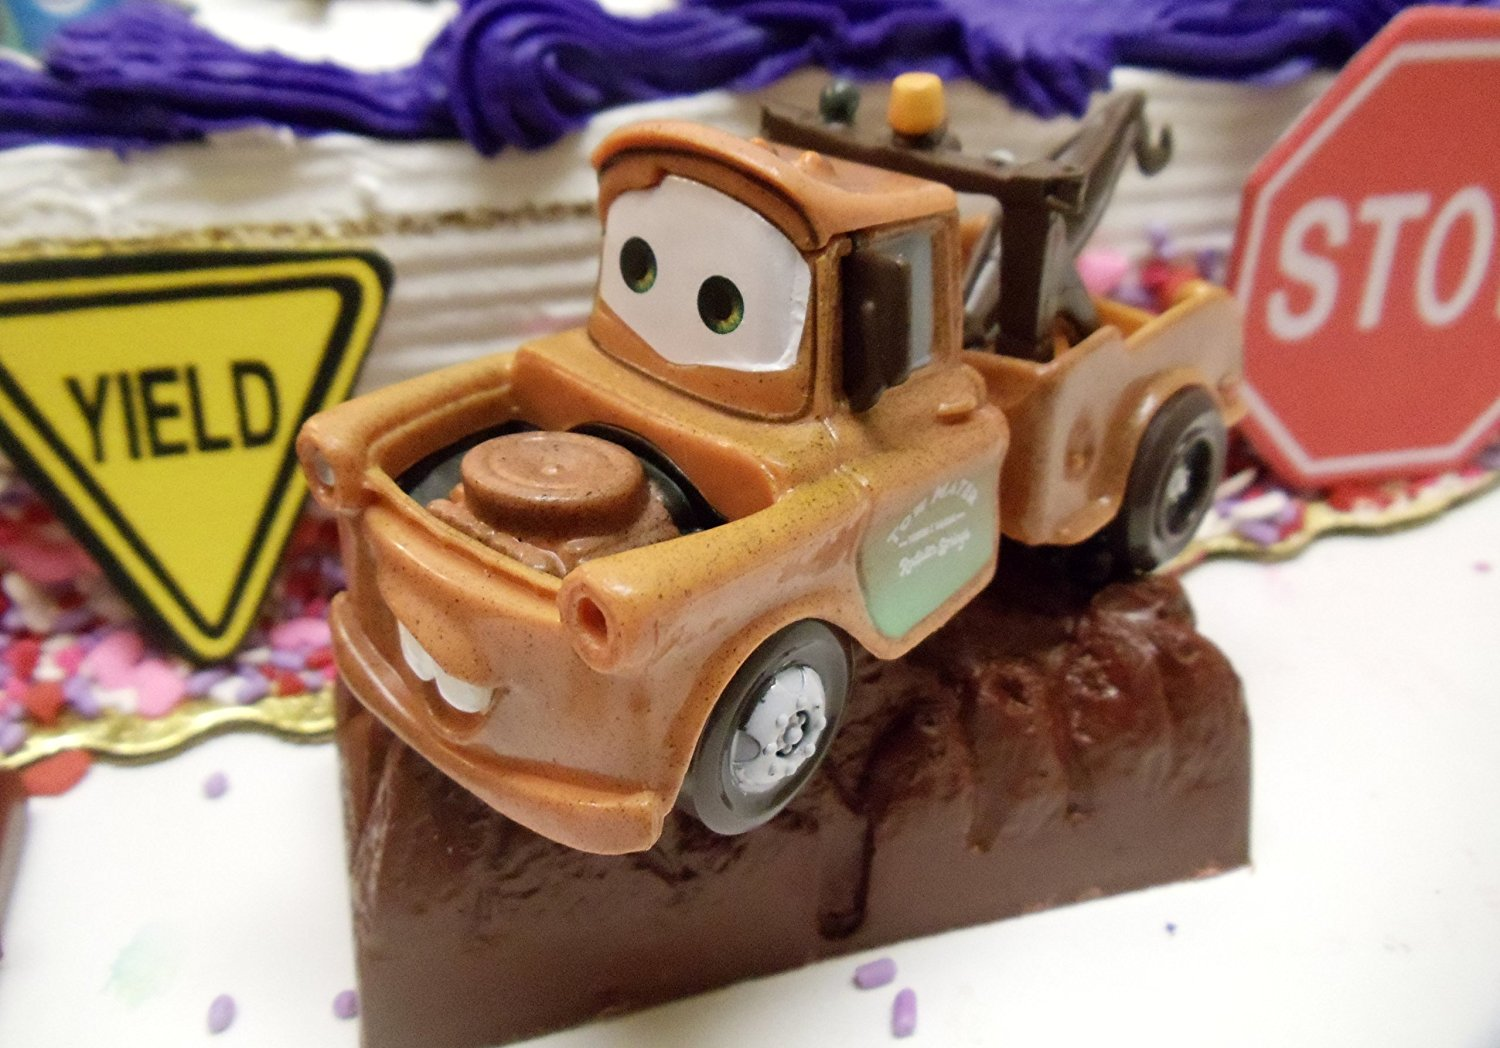 Excellent Cars 14 Piece Birthday Cake Topper Set Featuring Tow Mater Sarge Funny Birthday Cards Online Alyptdamsfinfo